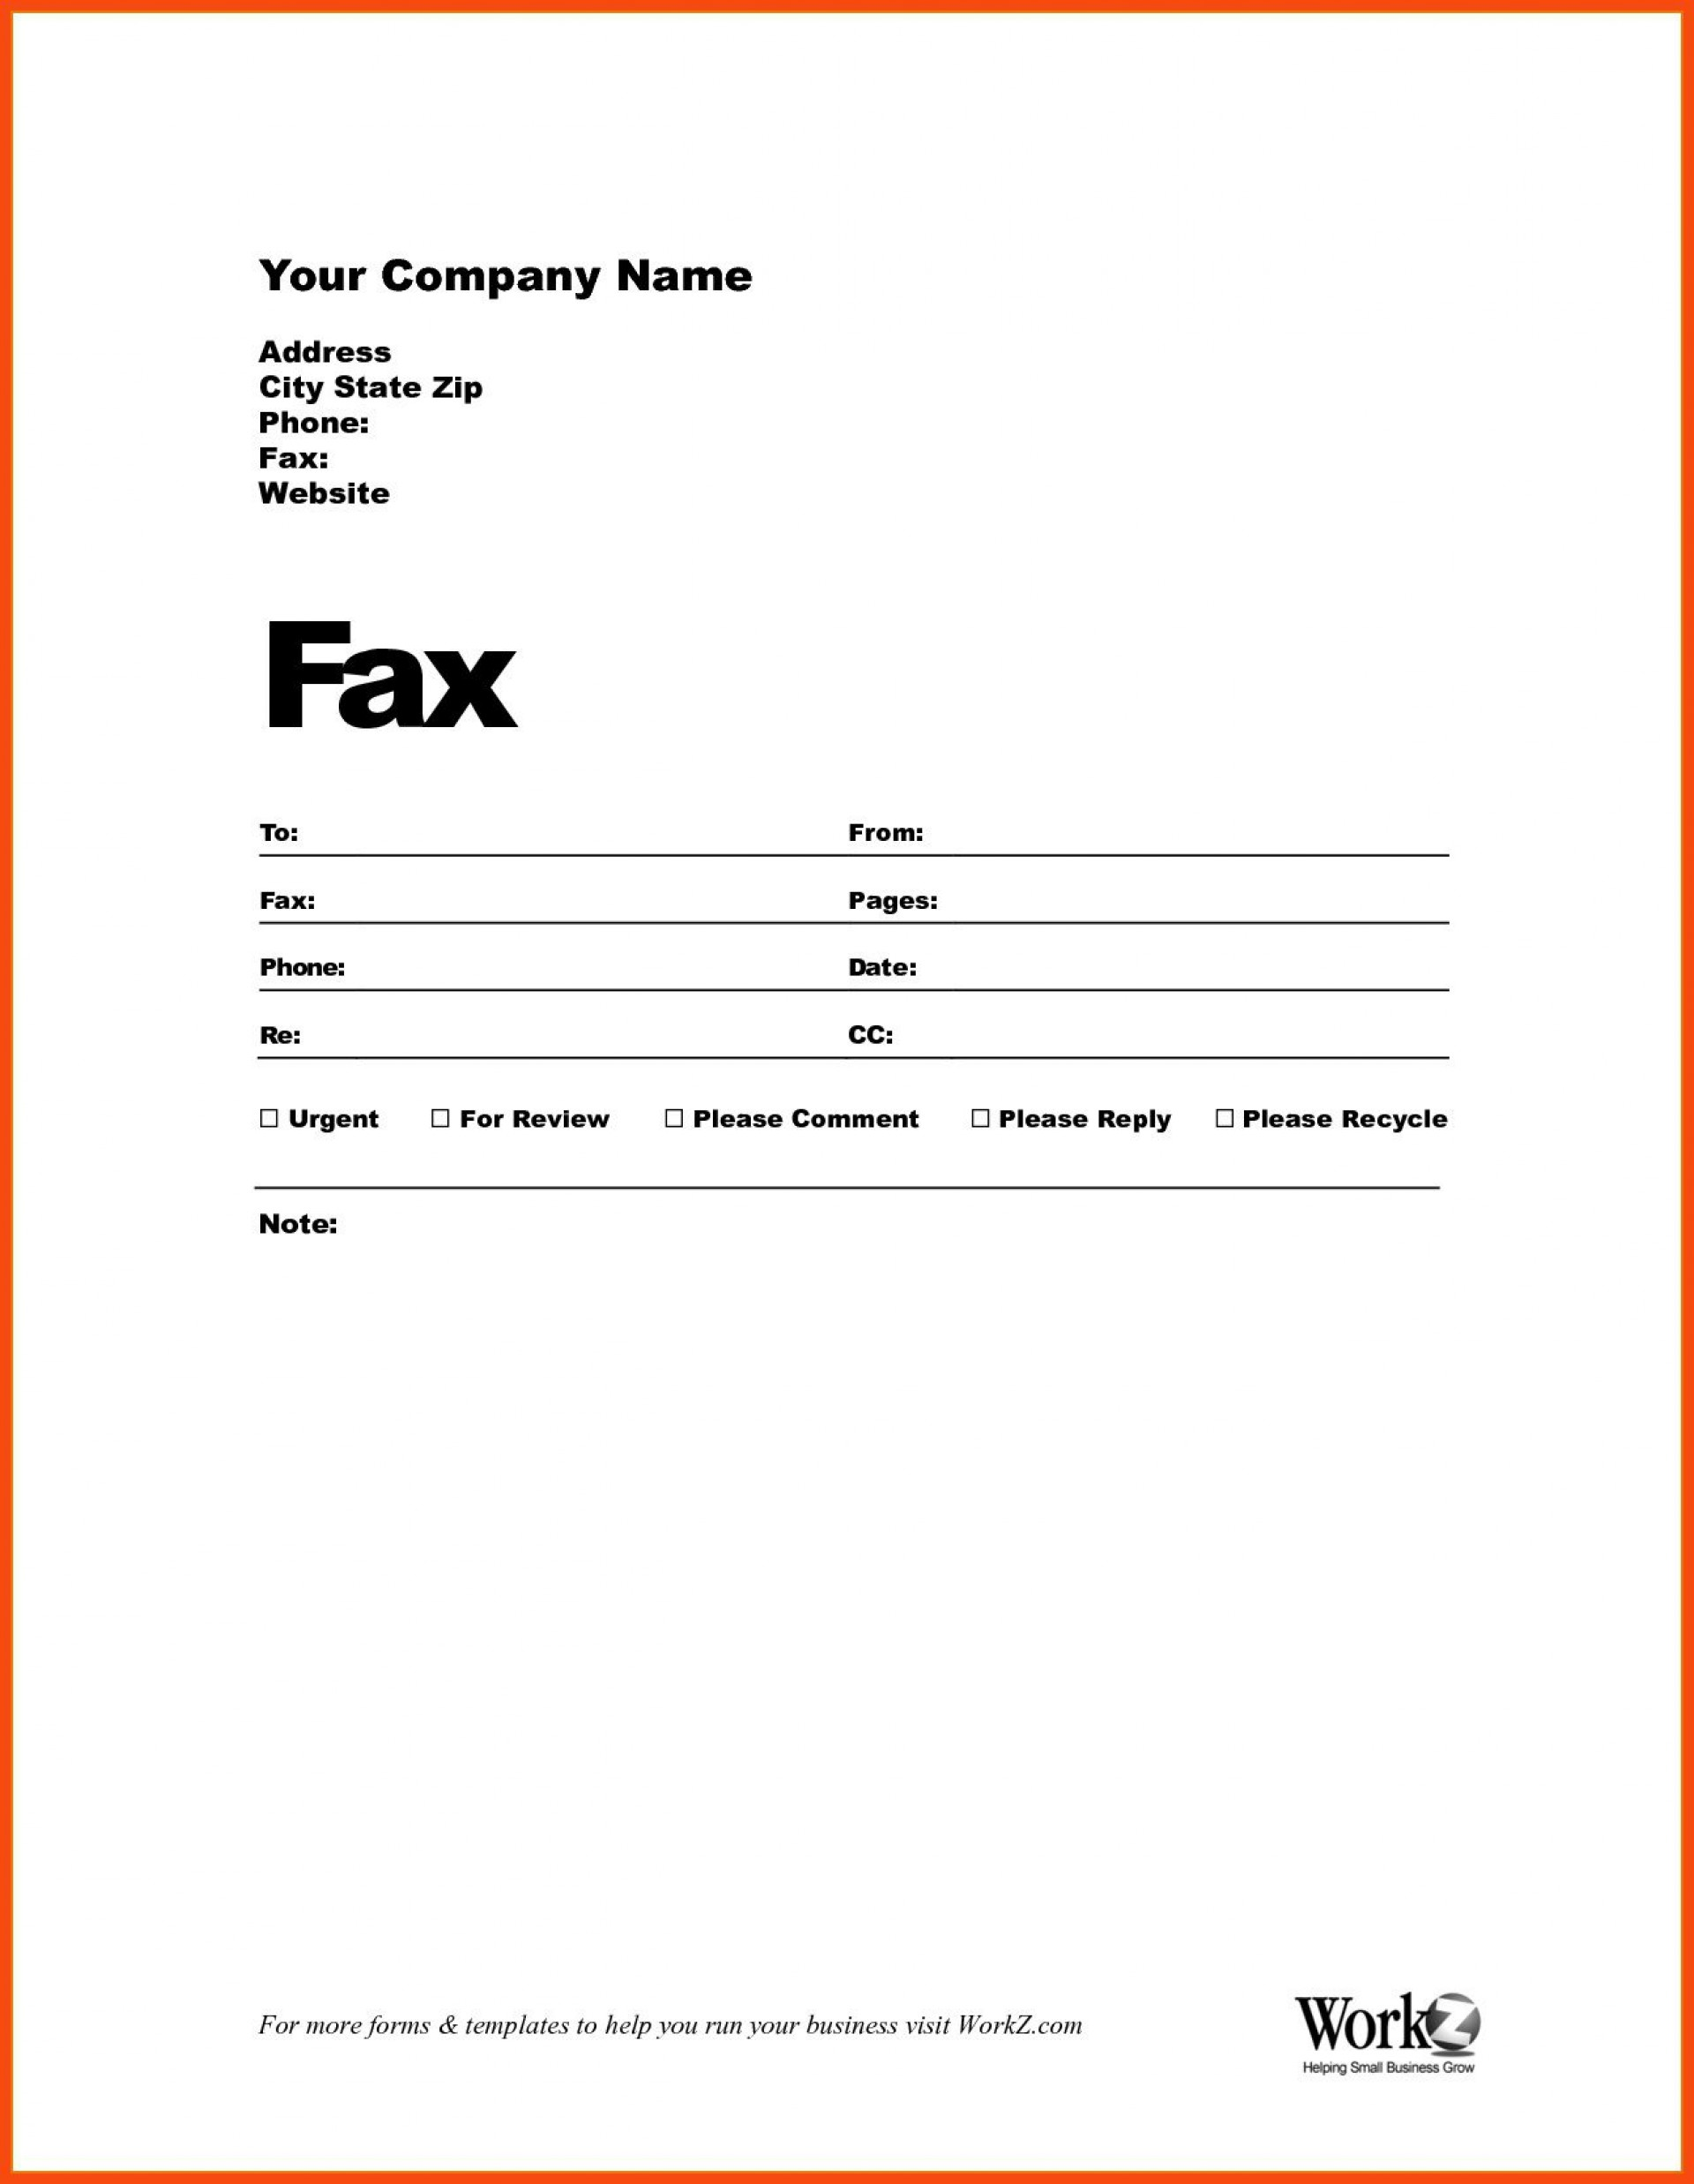 003 Impressive Fax Template Microsoft Word Example  Cover Sheet 2010 Letter Busines1920